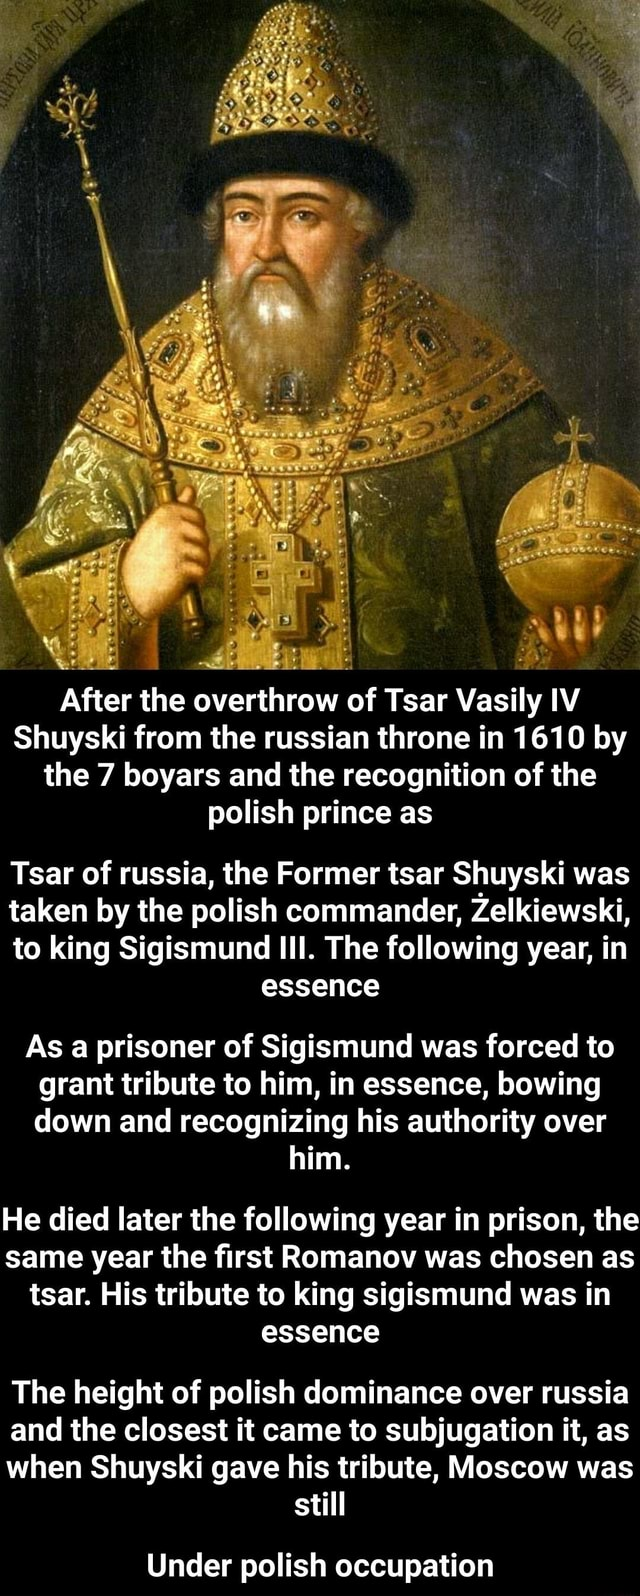 By After the overthrow of Tsar Vasily IV Shuyski from the russian throne in 1610 by the 7 boyars and the recognition of the polish prince as Tsar of russia, the Former tsar Shuyski was taken by the polish commander, Zelkiewski, to king Sigismund III. The following year, in essence As a prisoner of Sigismund was forced to grant tribute to him, in essence, bowing down and recognizing his authority over him. He died later the following year in prison, the same year the first Romanov was chosen as tsar. His tribute to king sigismund was in essence The height of polish dominance over russia and the closest it came to subjugation it, as when Shuyski gave his tribute, Moscow was still Under polish occupation  Under polish occupation memes